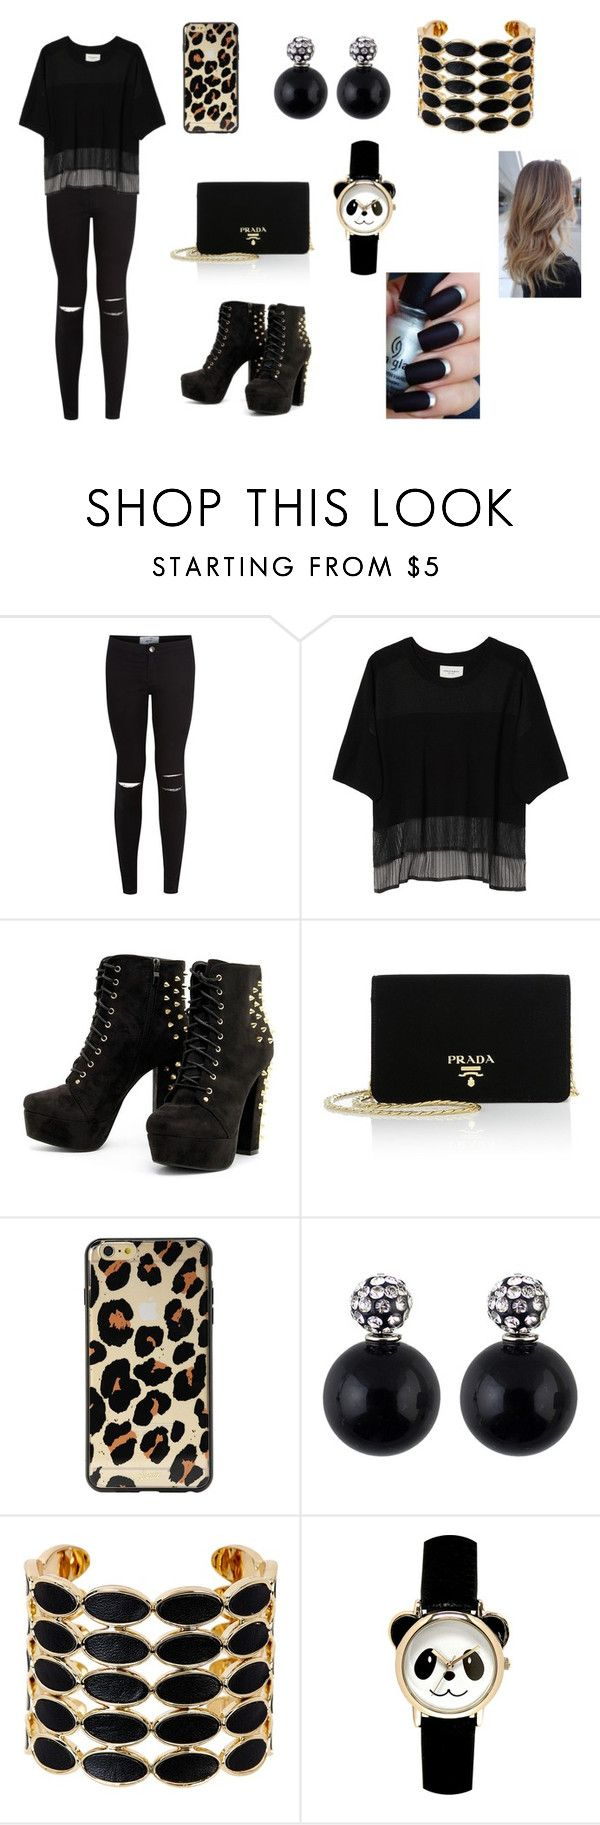 """lw"" by aiste-mini on Polyvore featuring New Look, Public School, Prada and House of Harlow 1960"